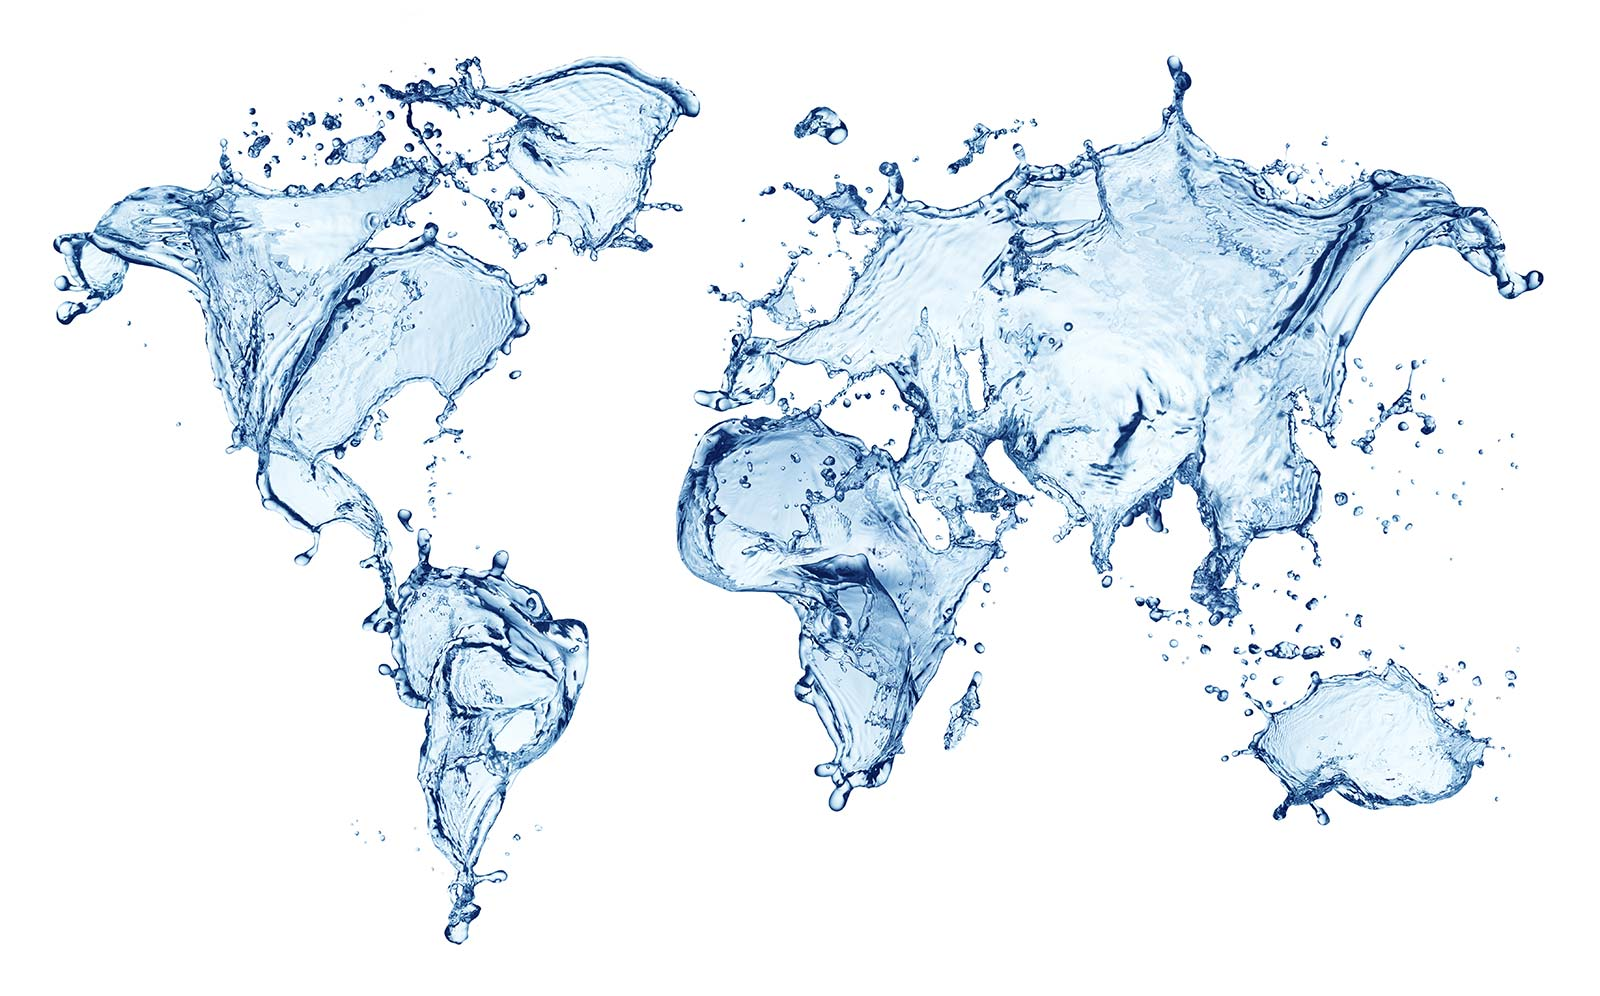 blue water splashing in the shape of a world map